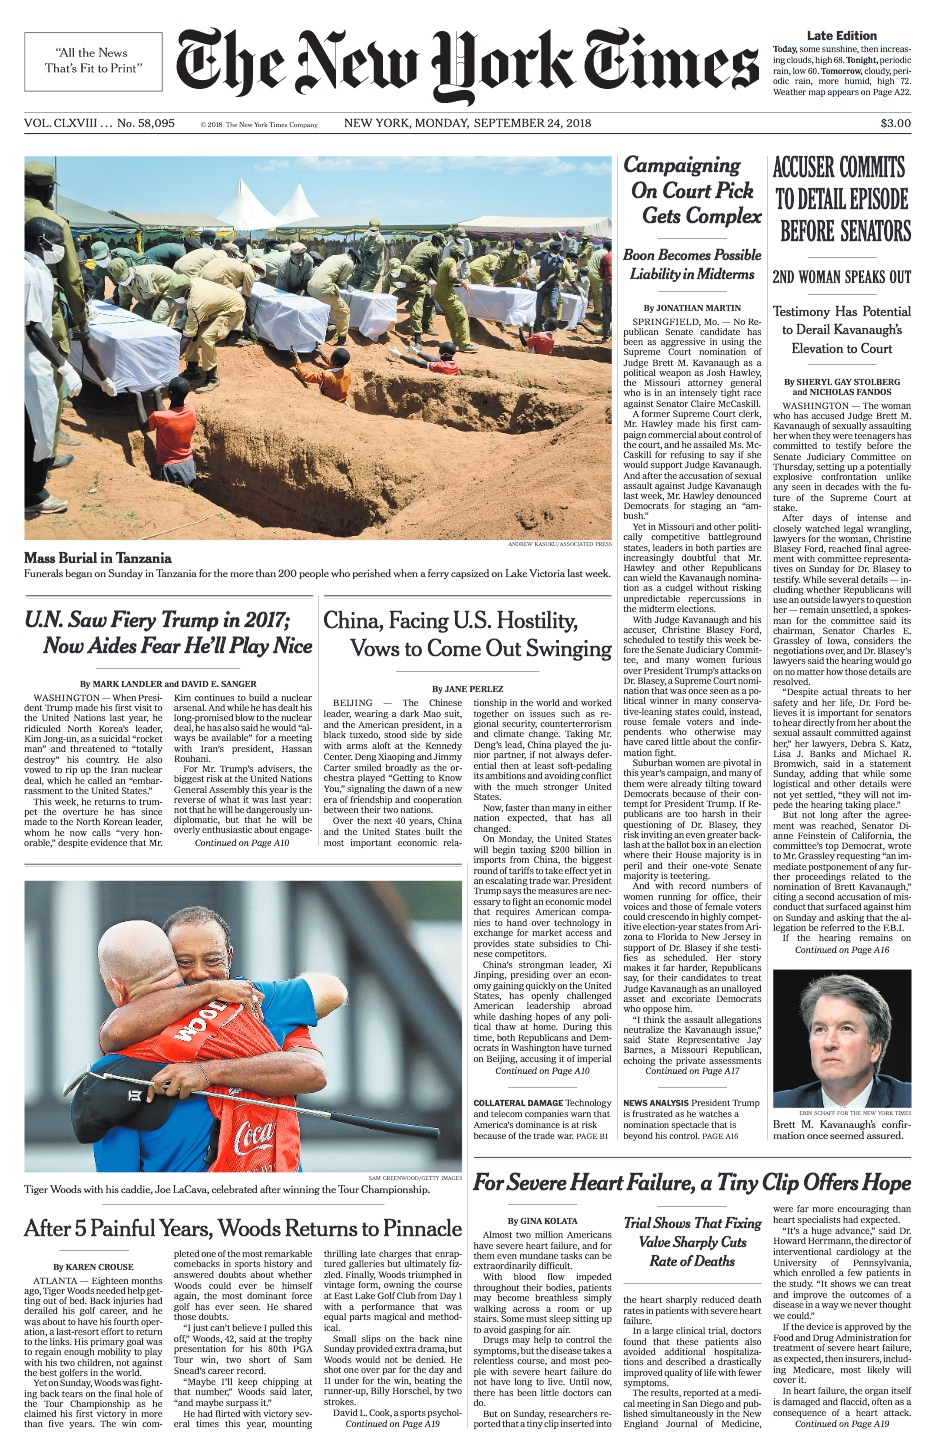 NYT_FrontPage_092418.jpg